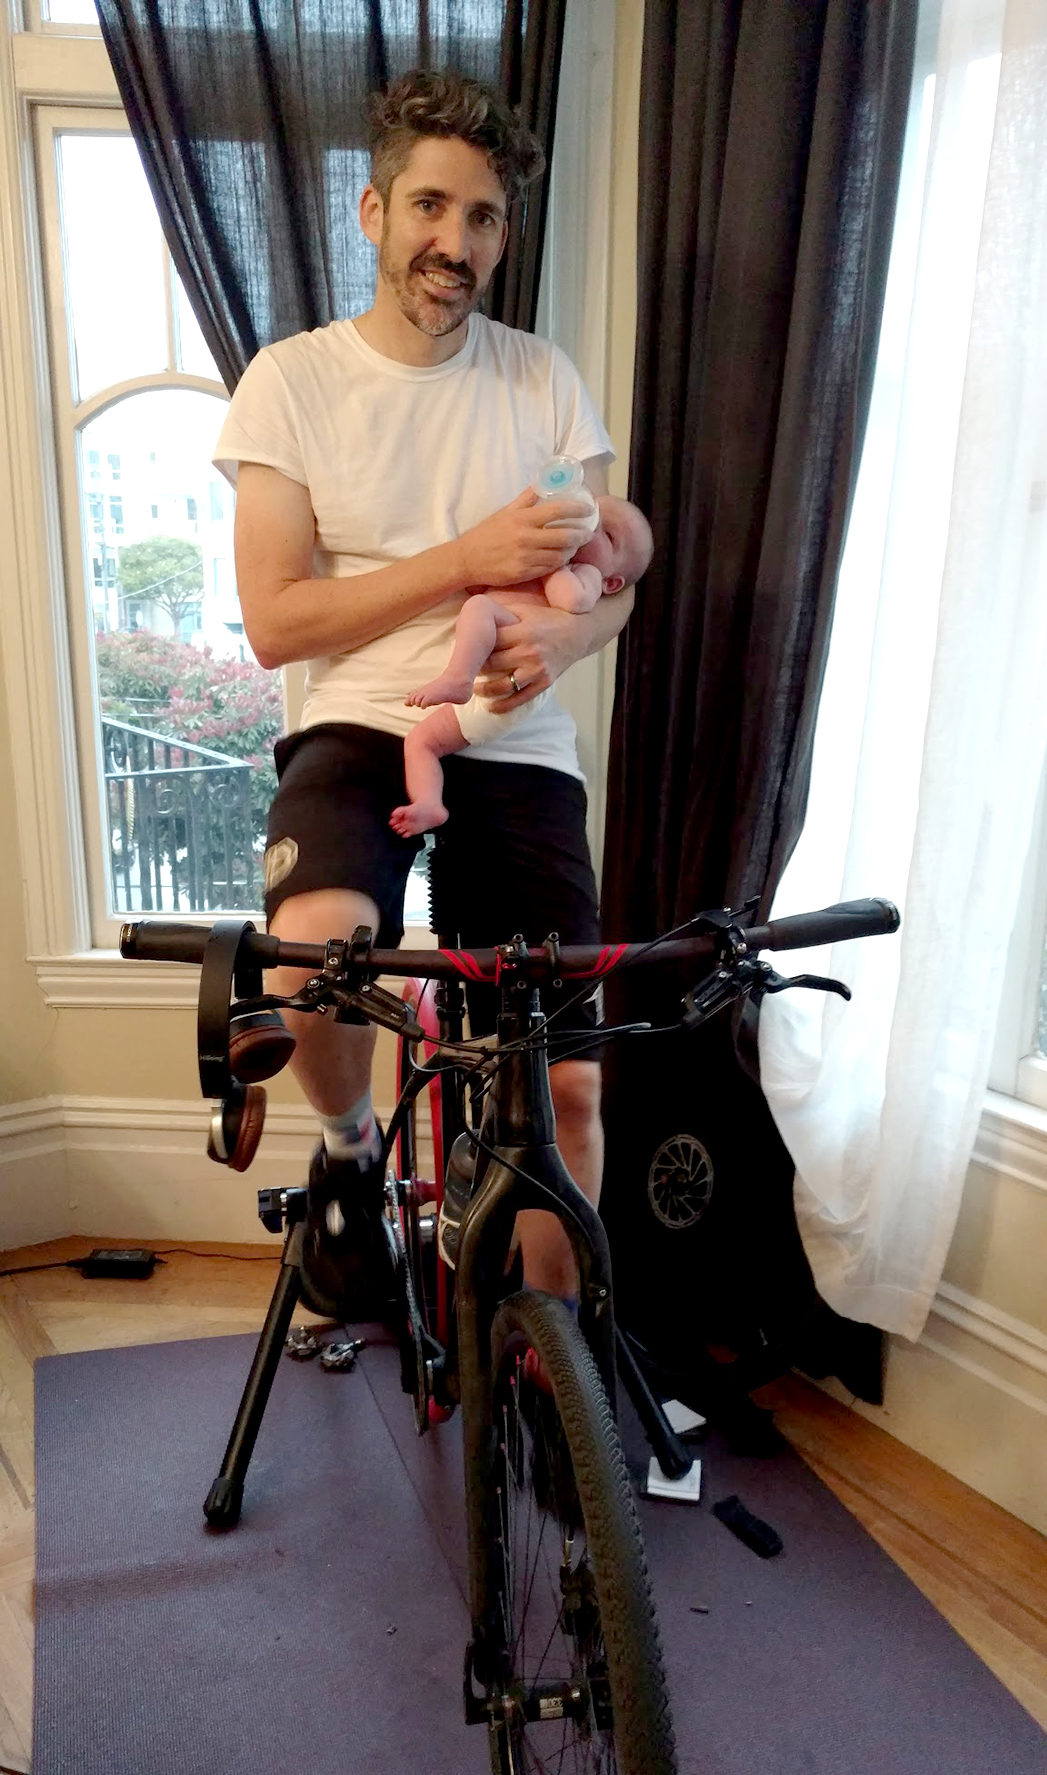 Biking with a newborn